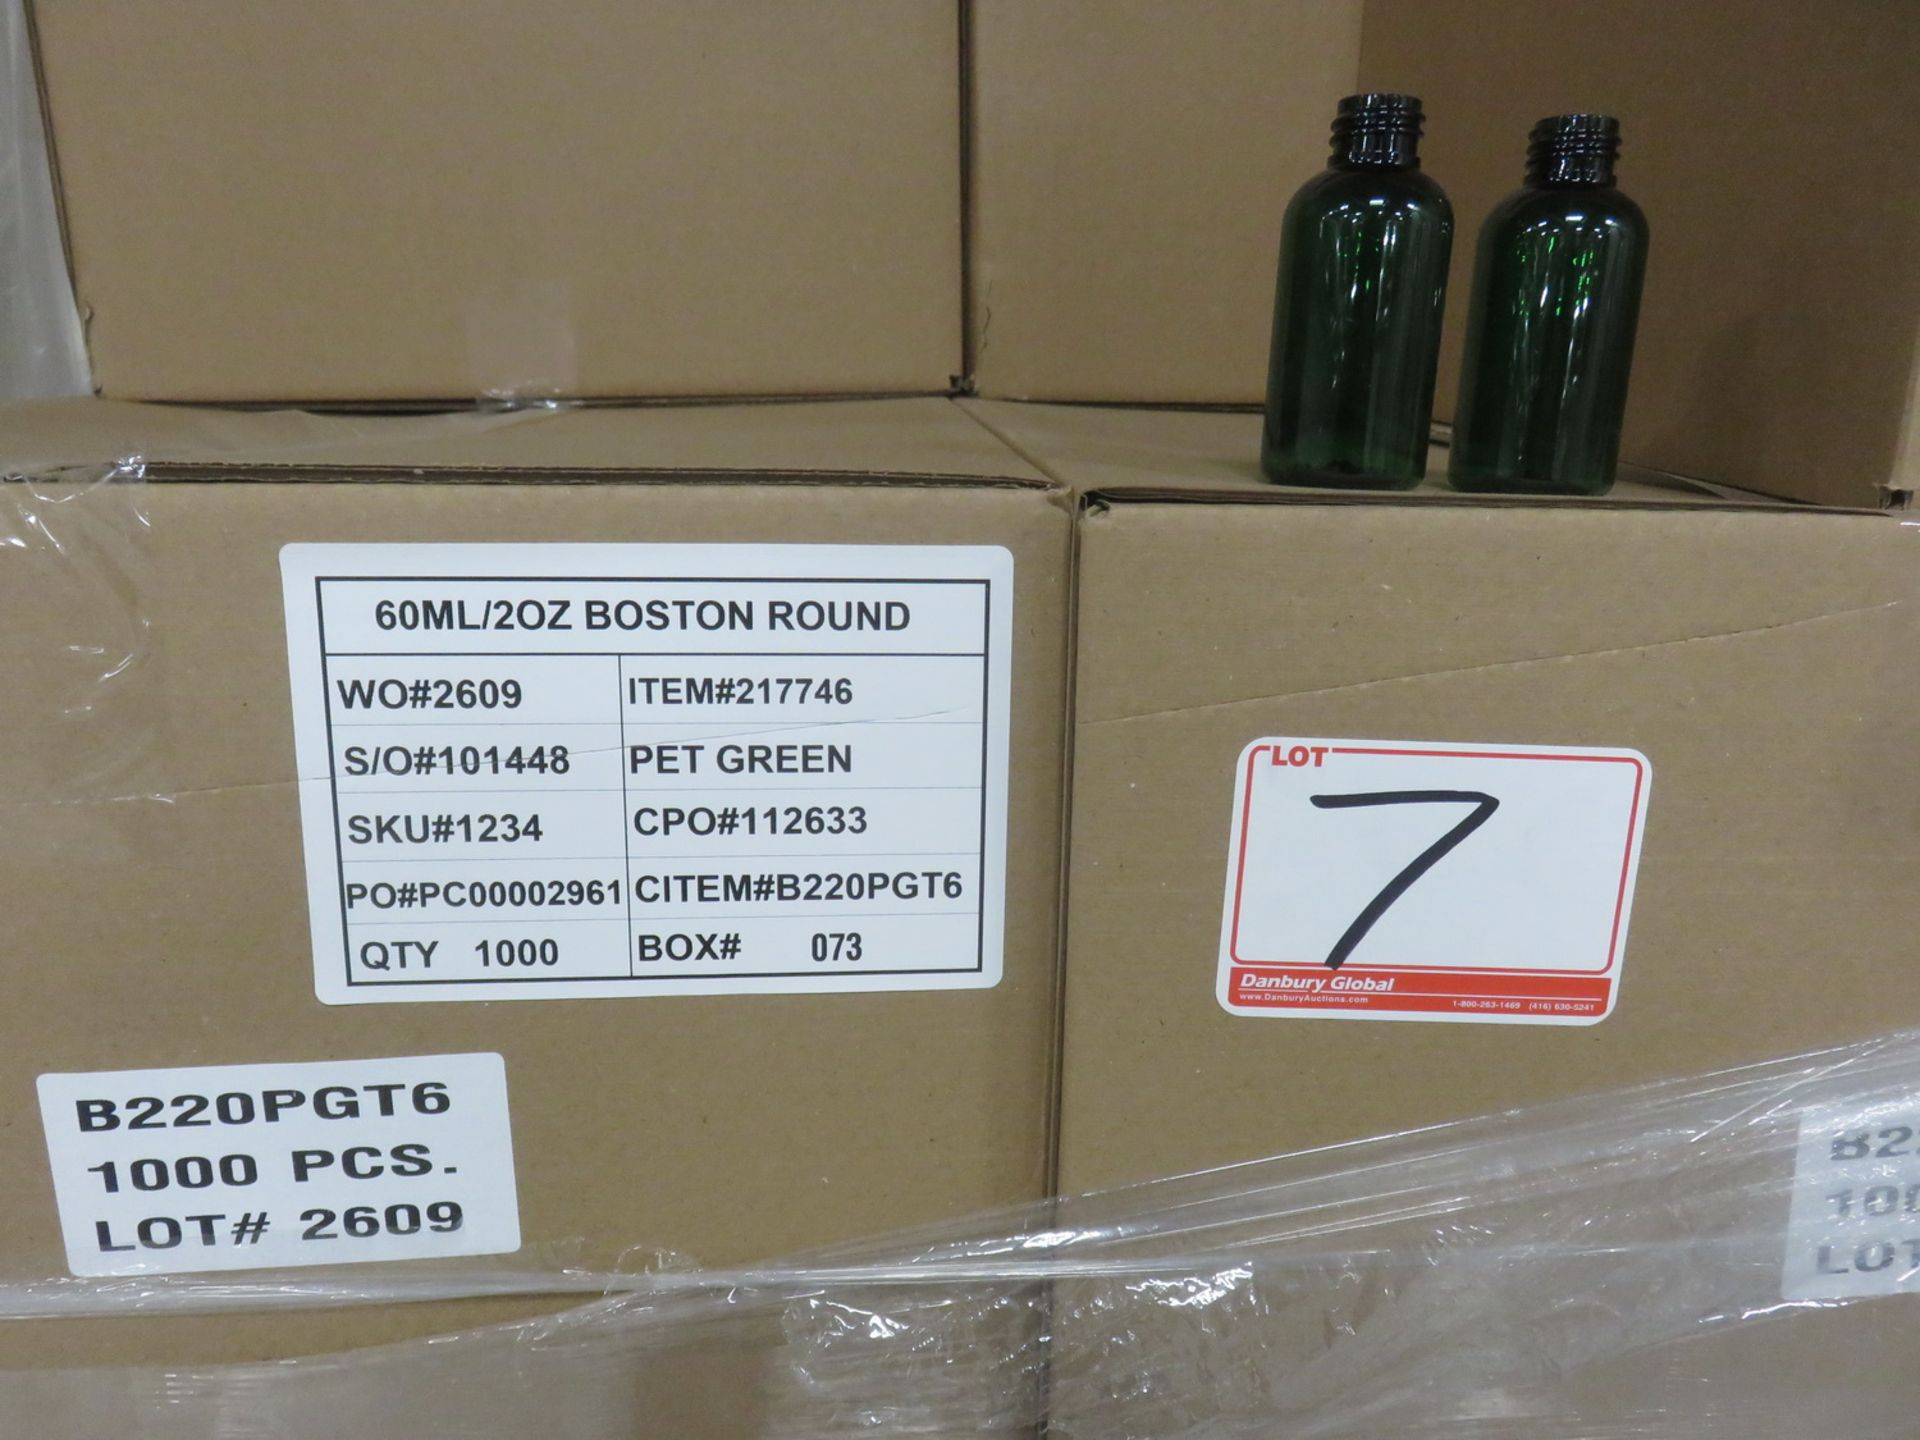 Lot 7 - BOXES - PET GREEN BOTTLES - 60ML / 2OZ BOSTON ROUND - (1000 PCS/BOX) (BOTTLES ONLY - NO CAPS)